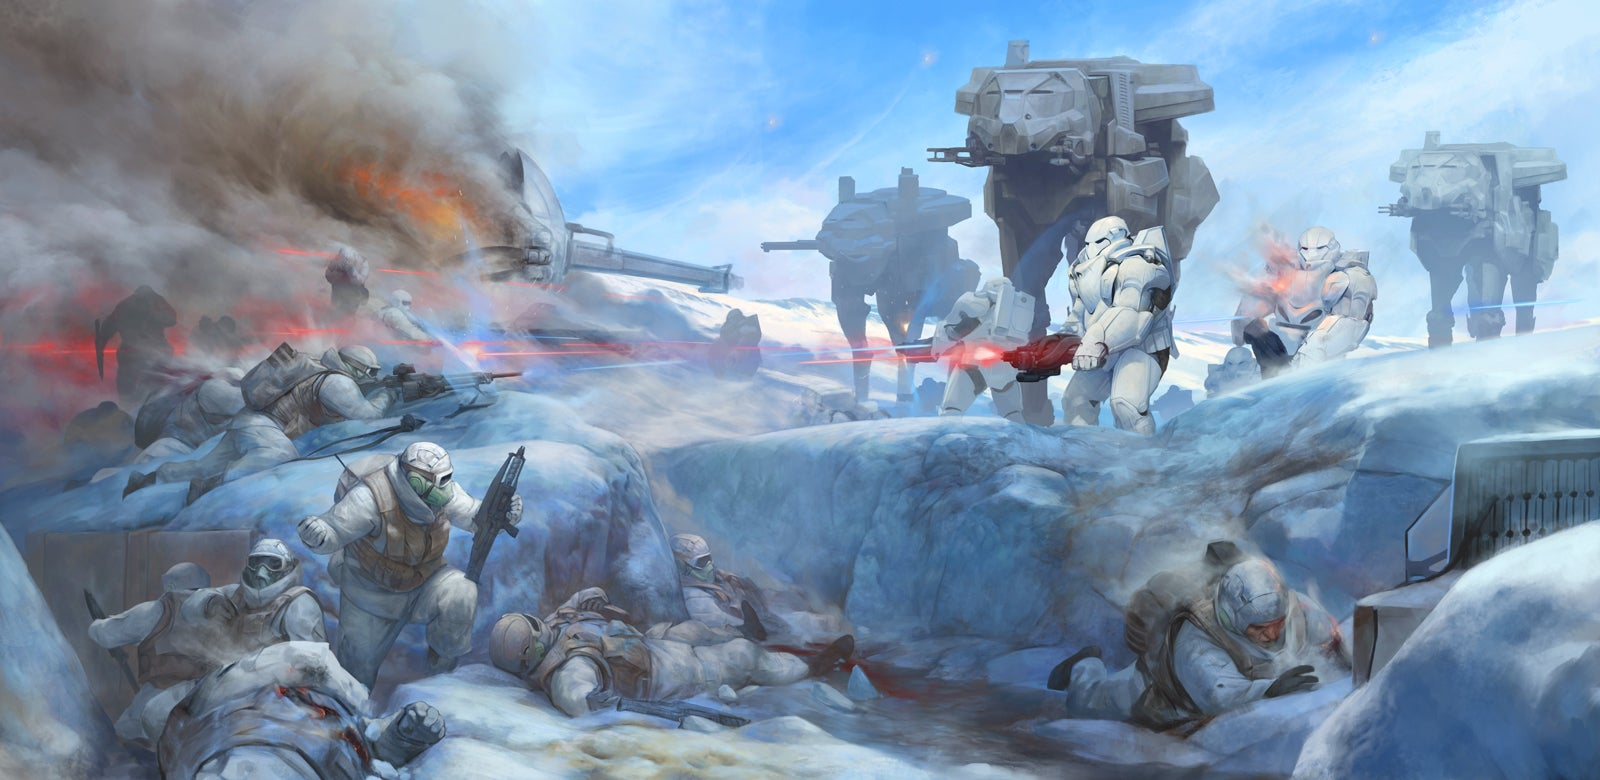 Star Wars: Reimagined Gives The Galaxy Some Fresh New Looks